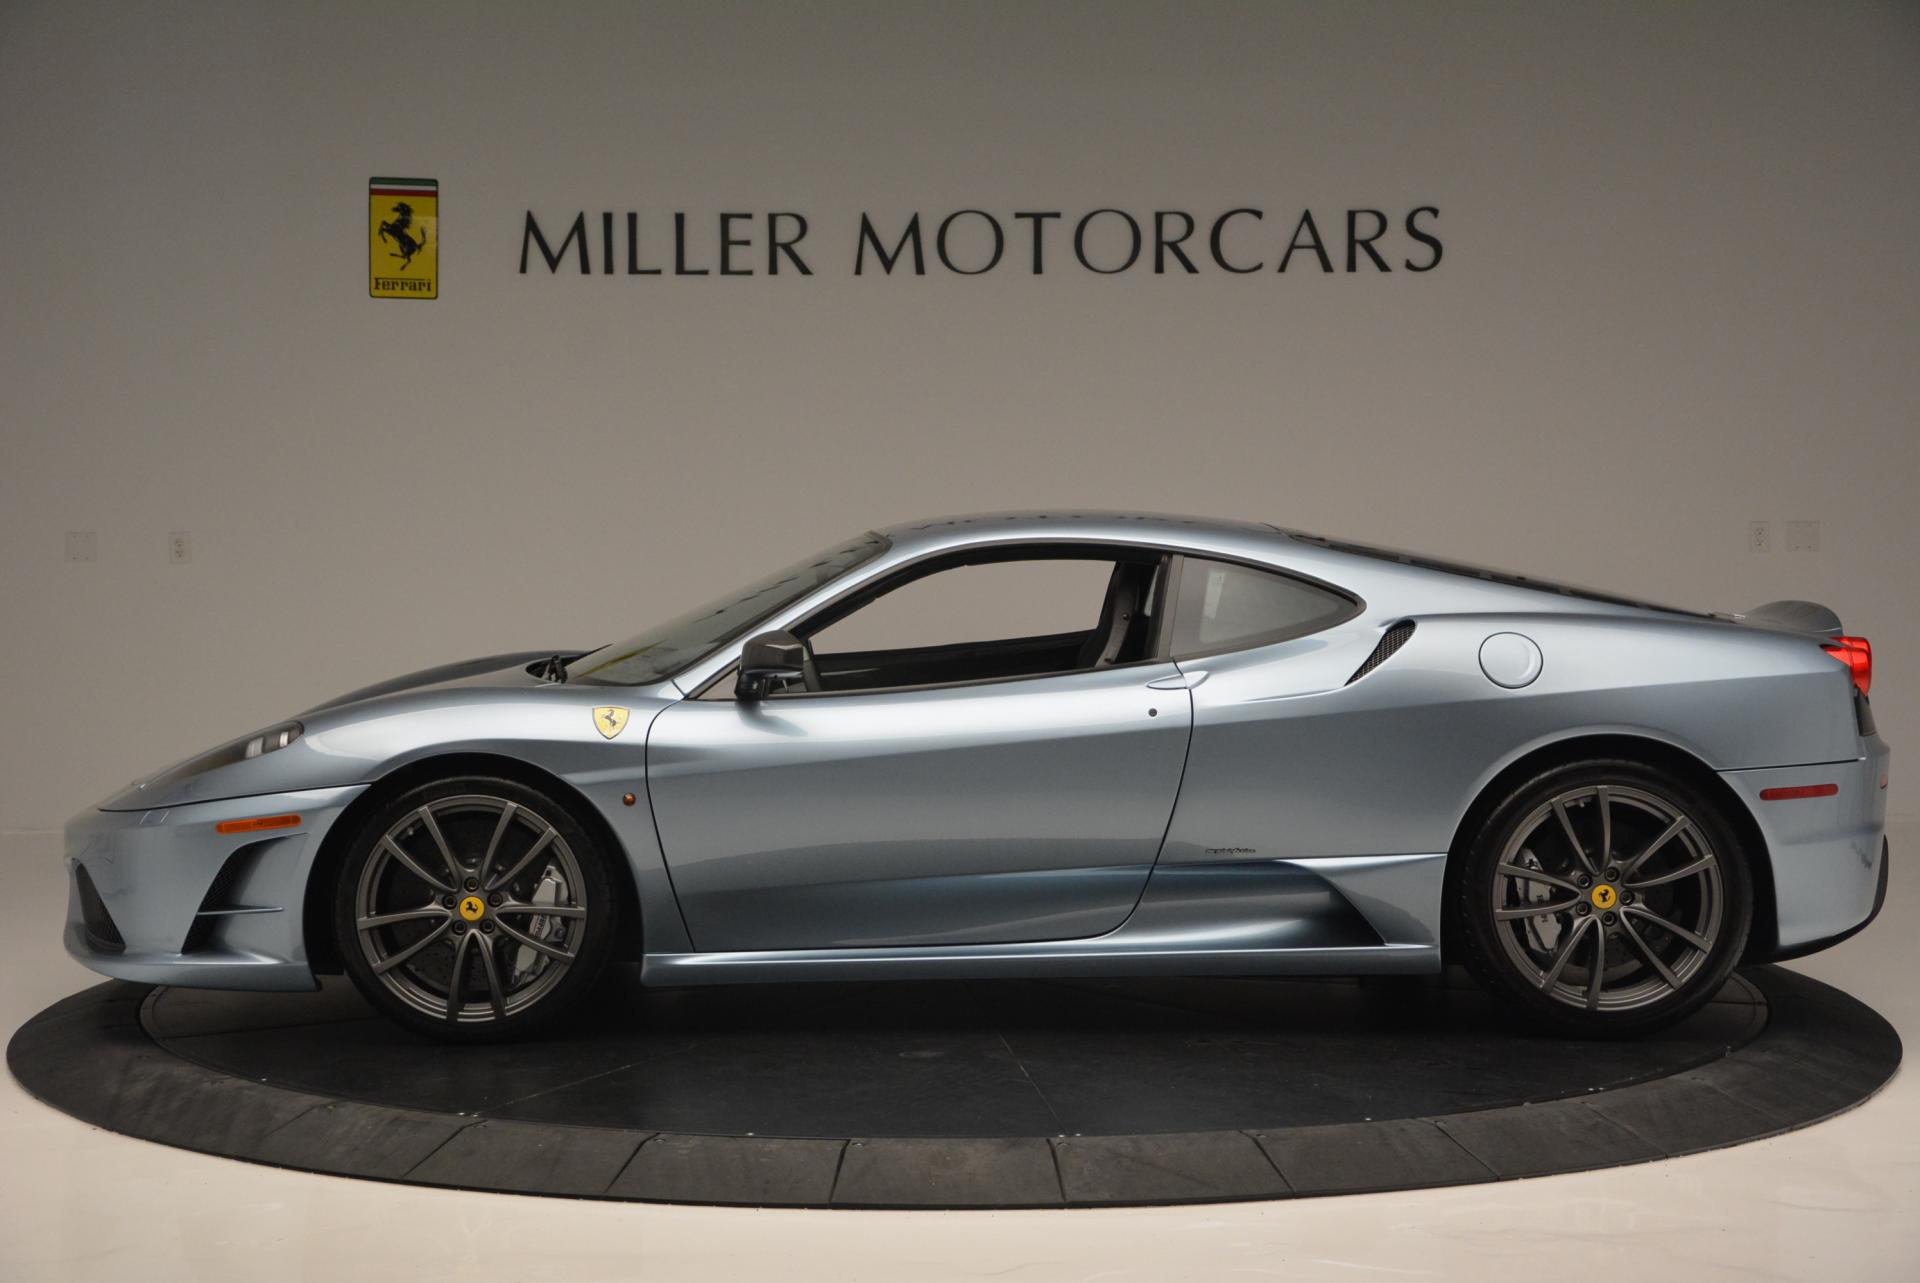 Used 2008 Ferrari F430 Scuderia For Sale In Greenwich, CT 146_p3